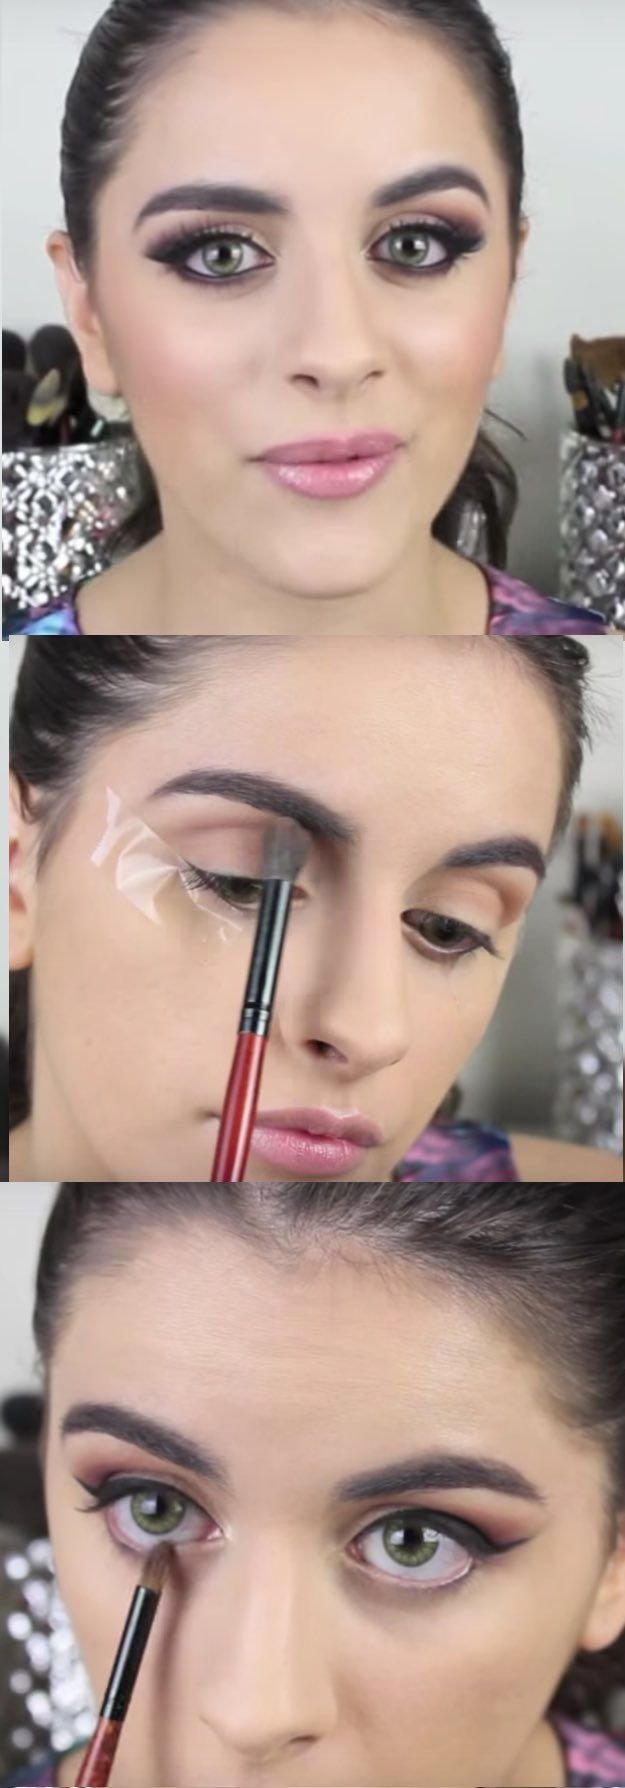 34 Makeup Tutorials For Small Eyes The Goddess - 625×1788